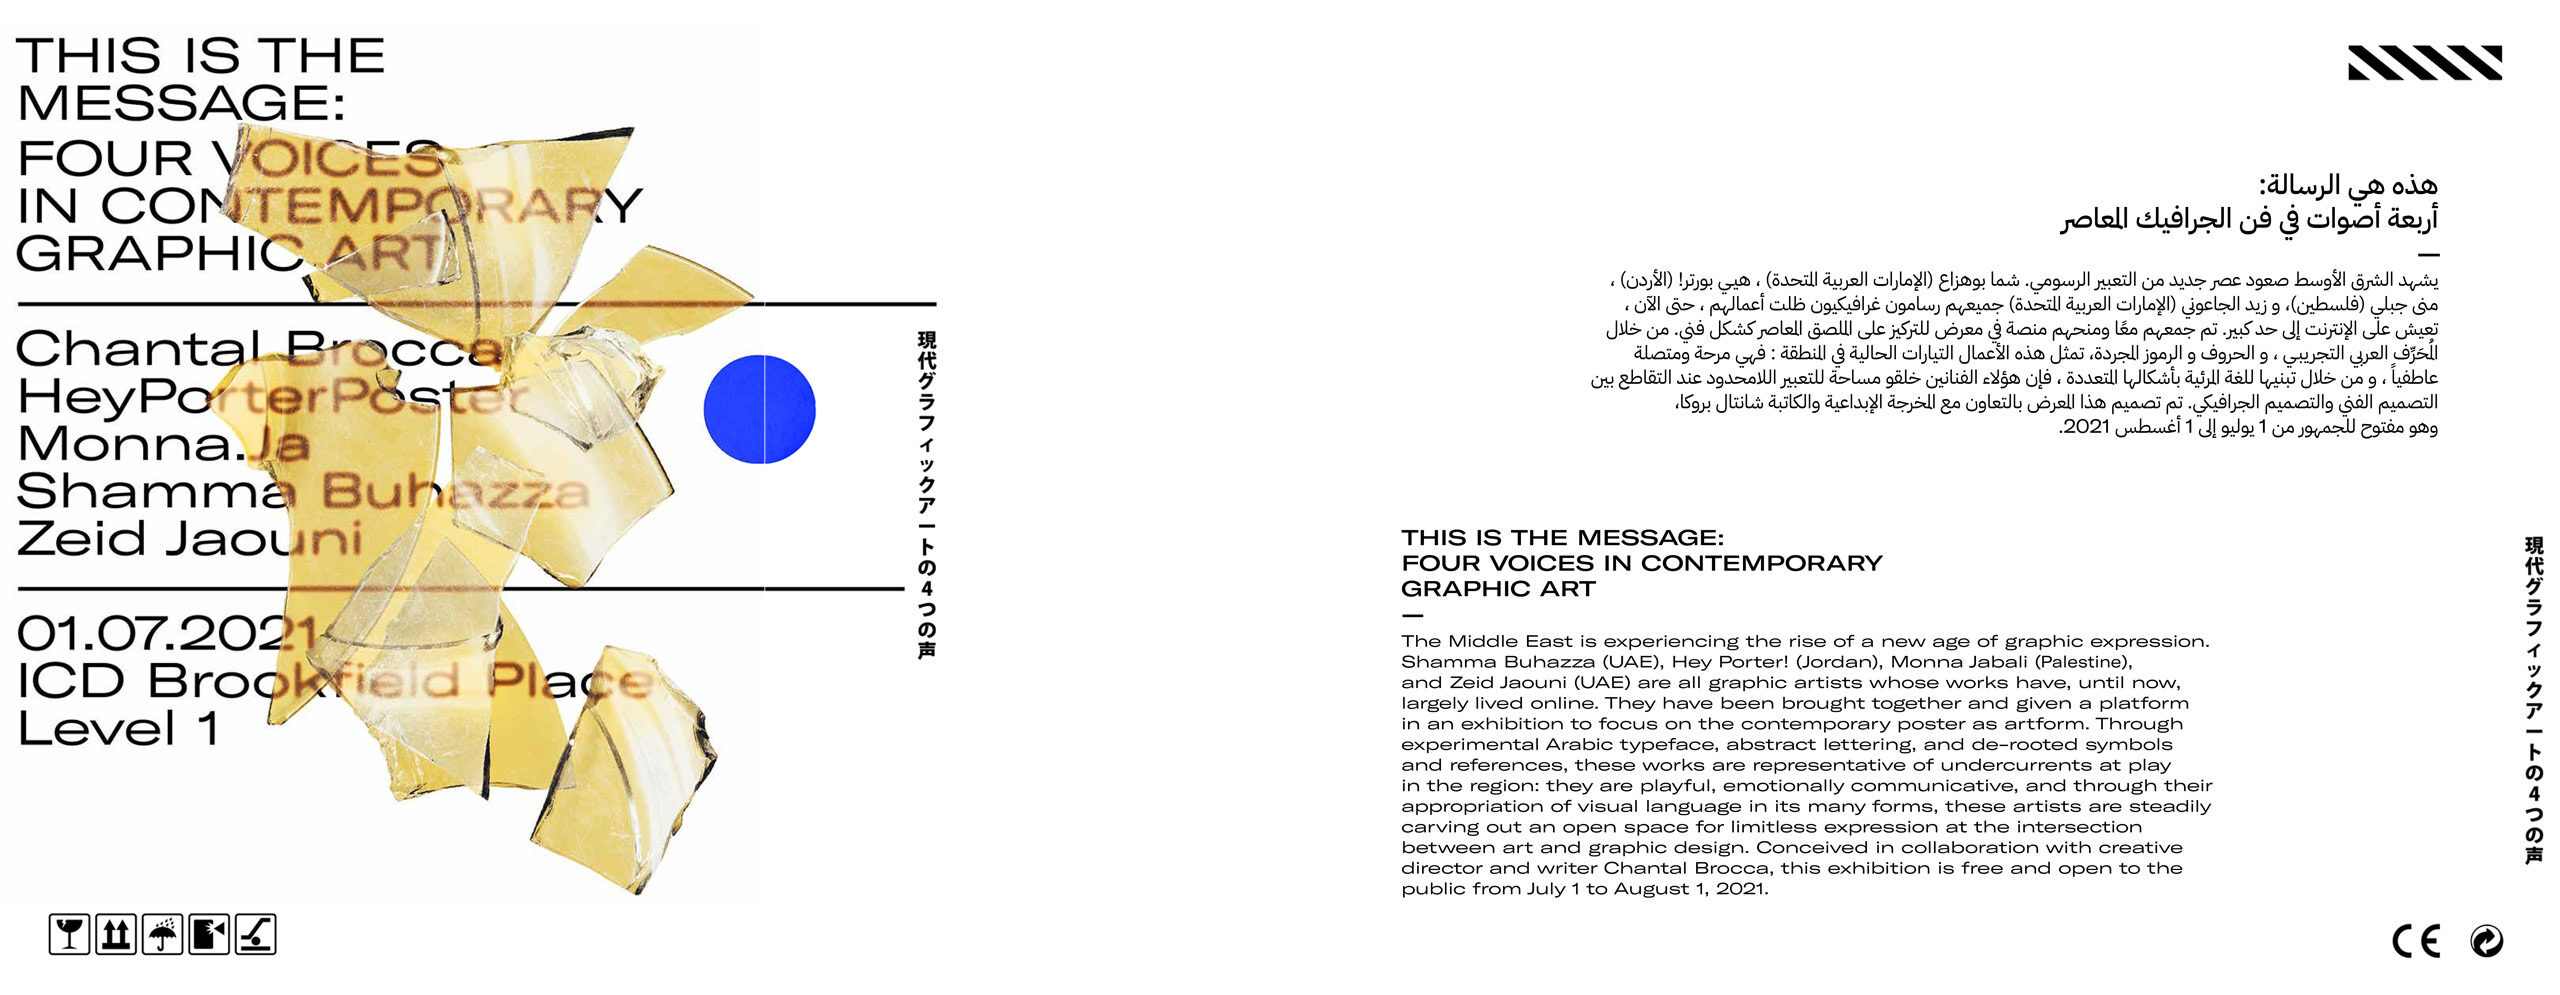 ICD Brookfield Place Dubai This Is The Message: Four Voices in Contemporary Graphic Art